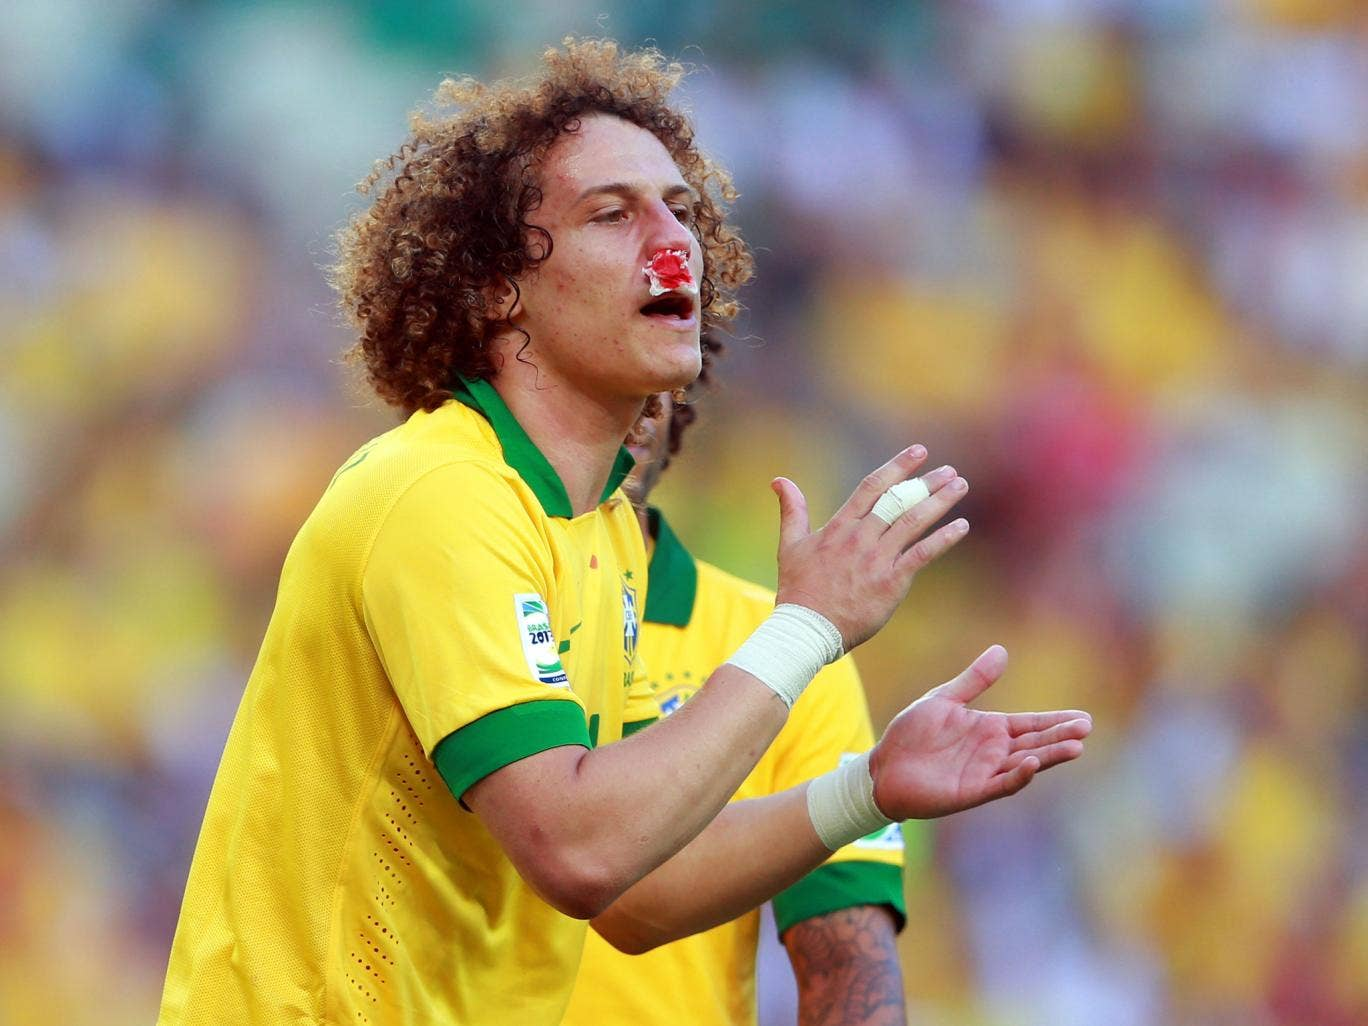 David Luiz in action for Brazil after he suffered a broken nose